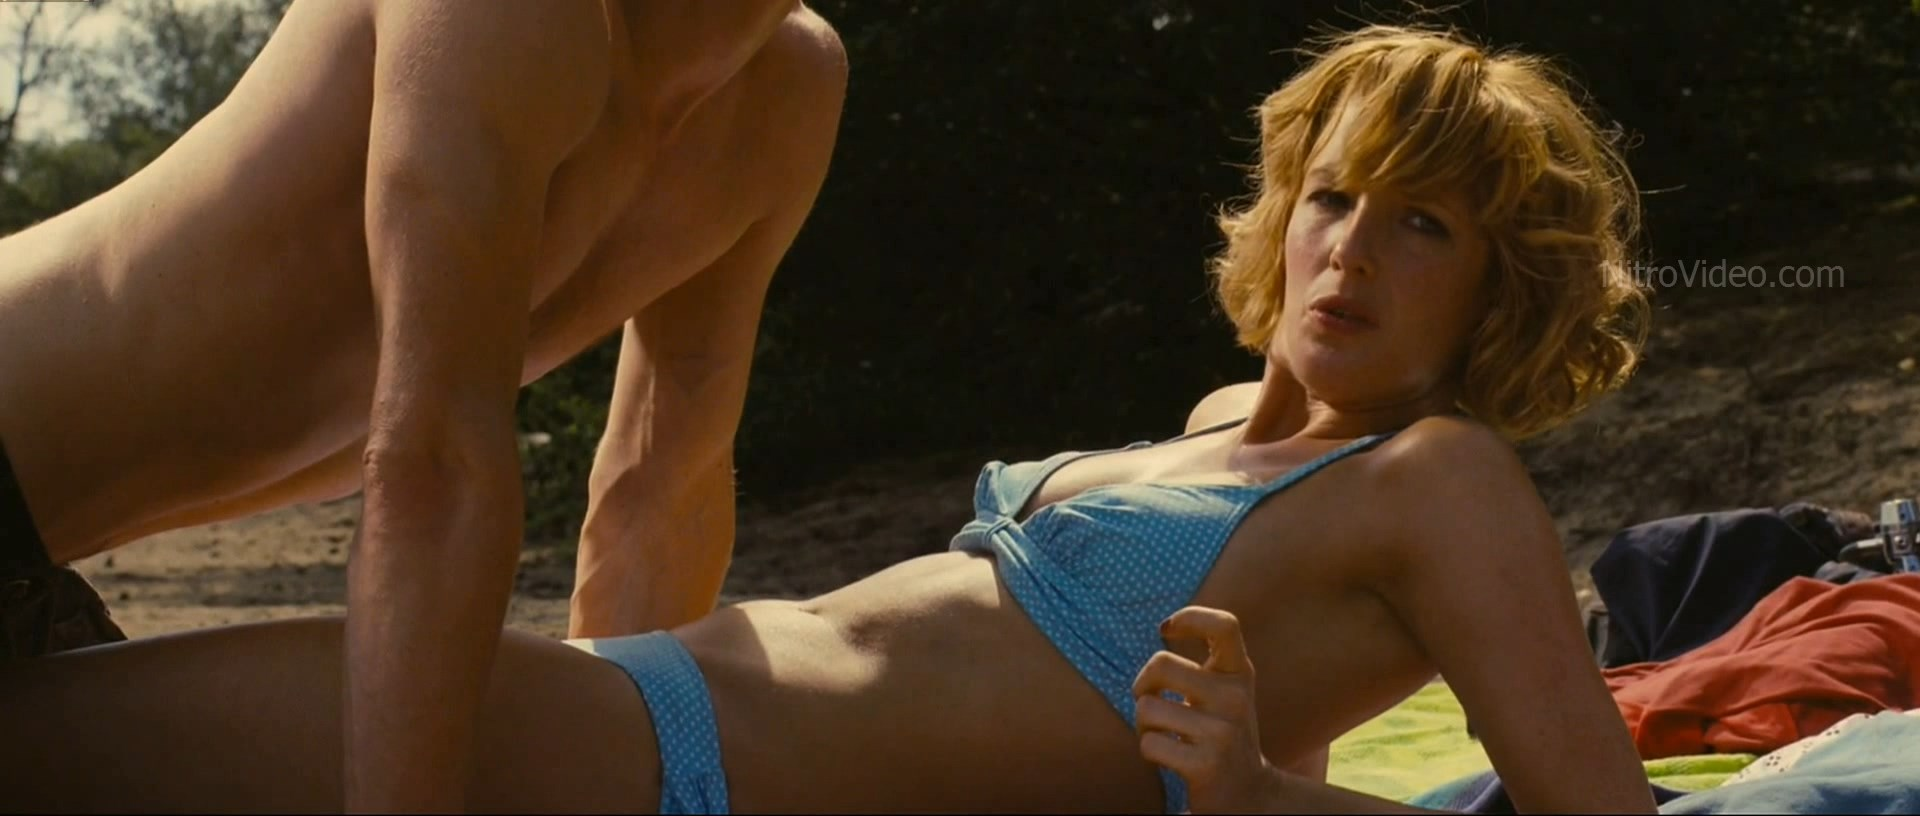 Nude pictures of kelly reilly